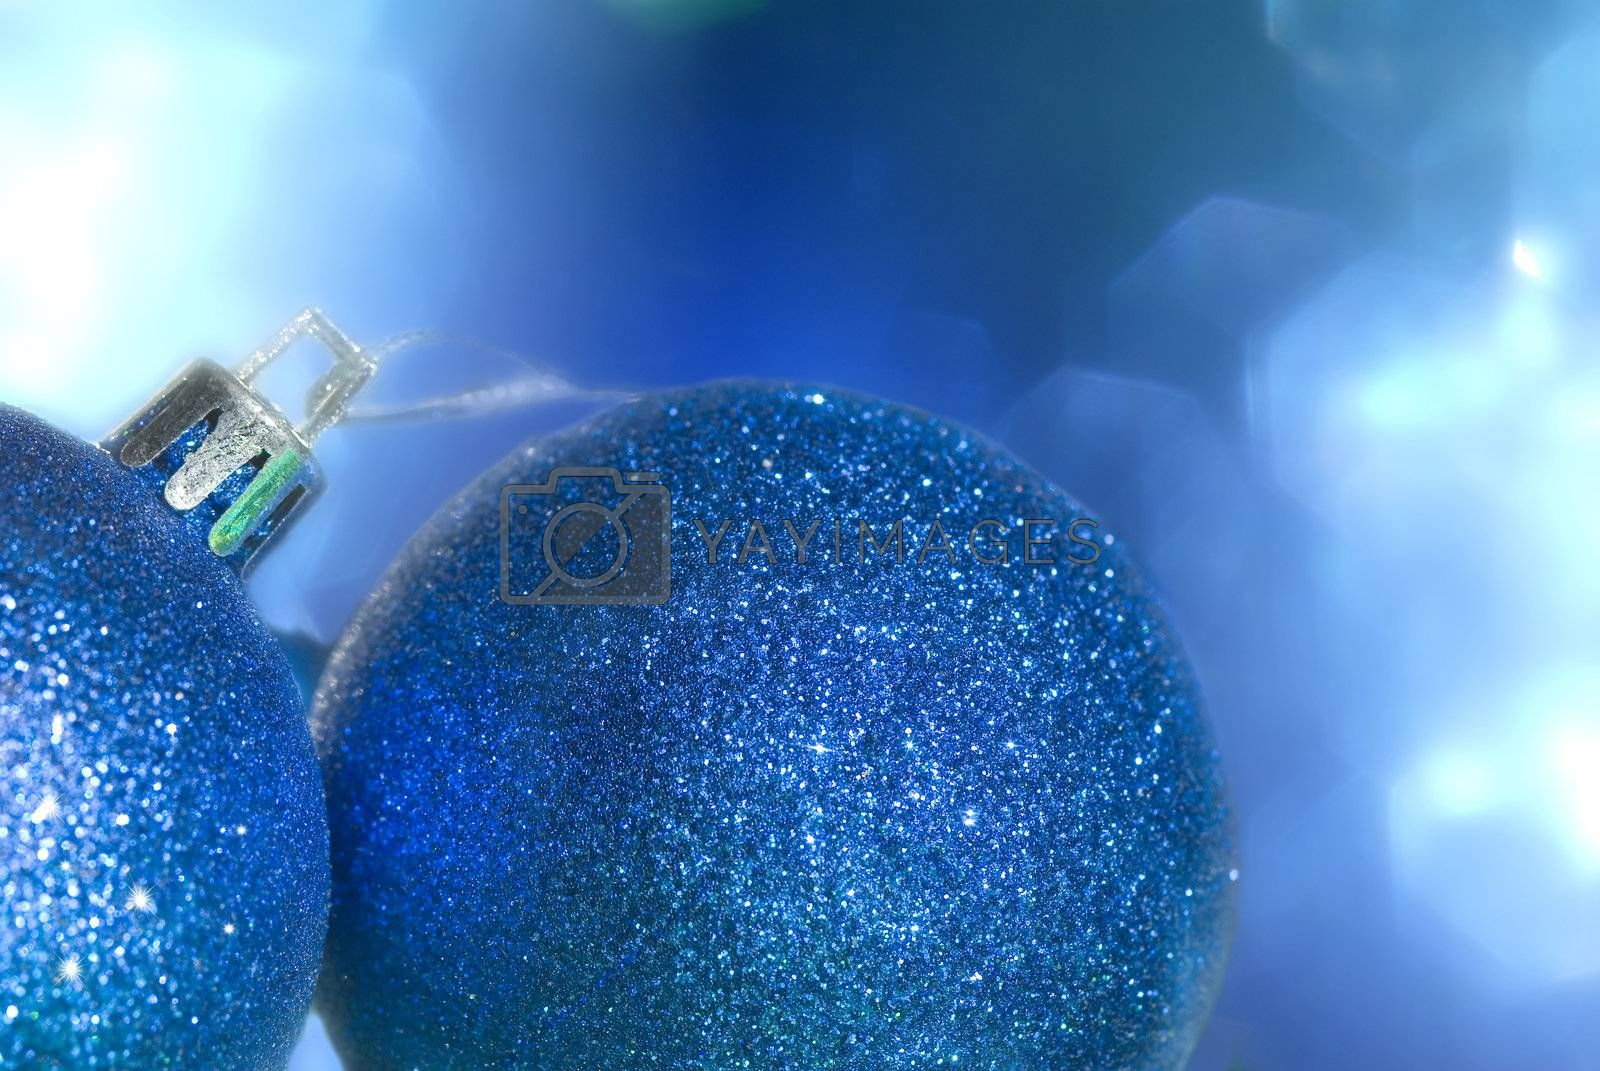 Christmas card two bright blue ball in background blur